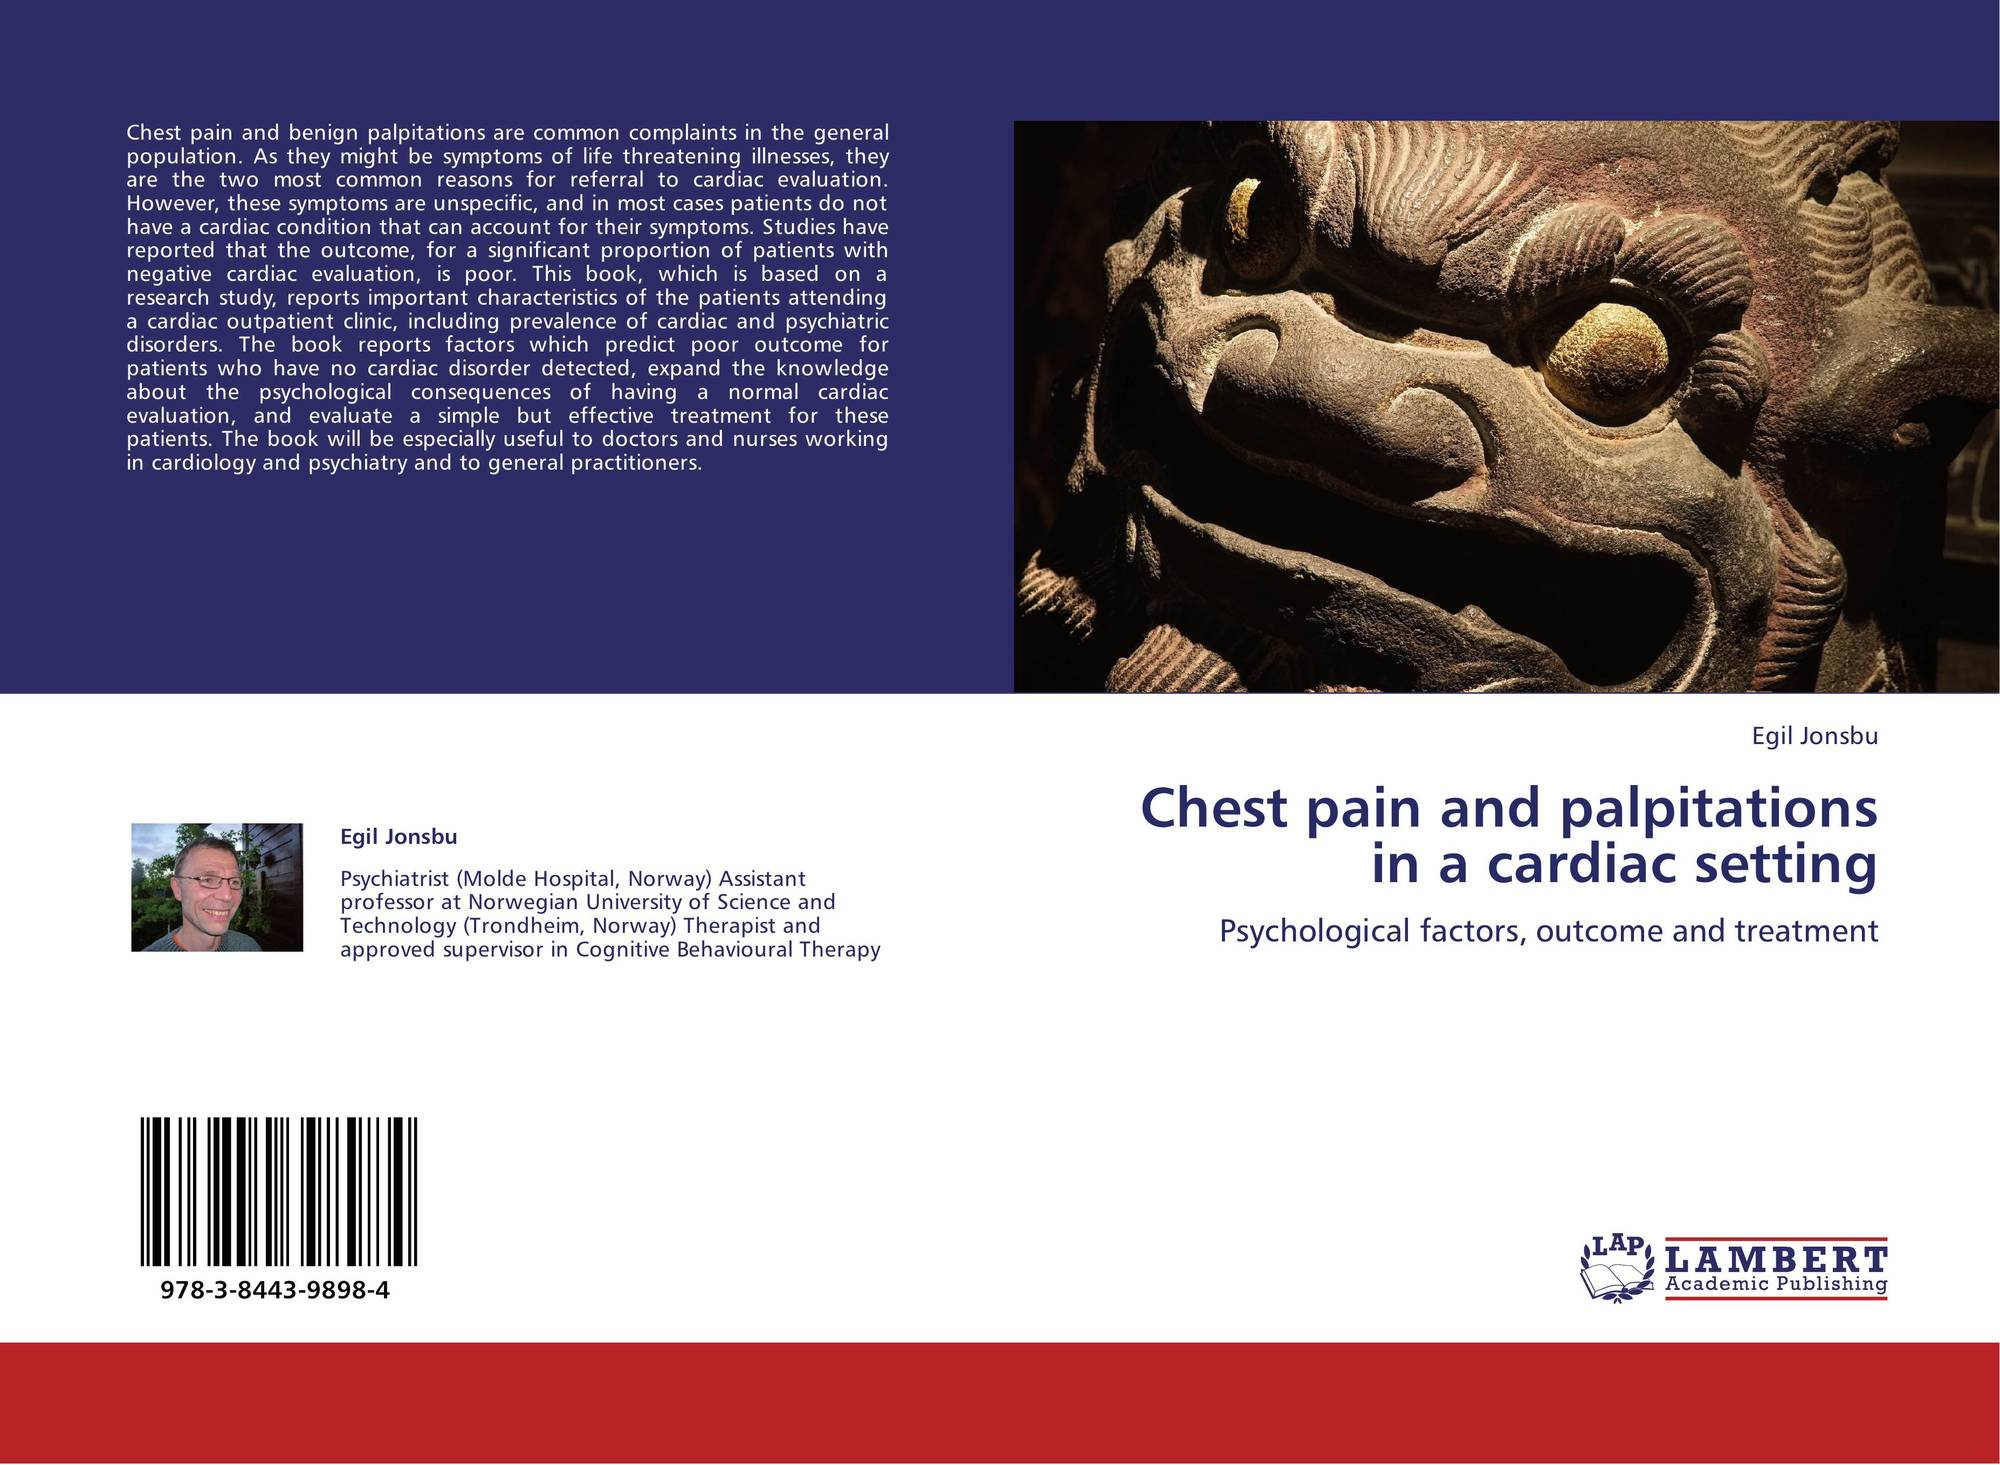 Chest pain and palpitations in a cardiac setting, 978-3-8443